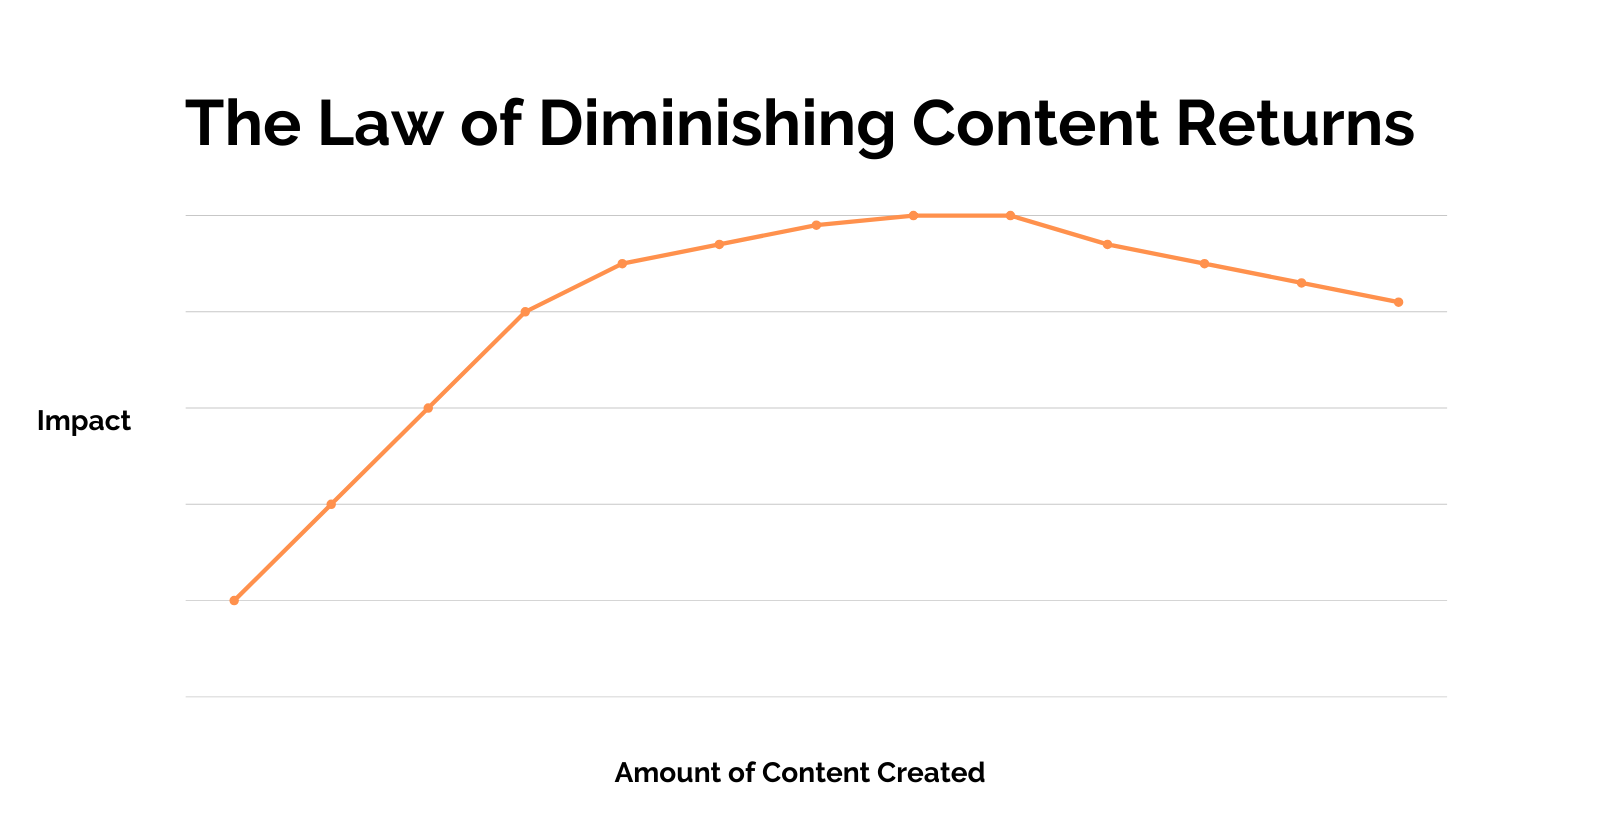 The Law of Diminishing Content Returns